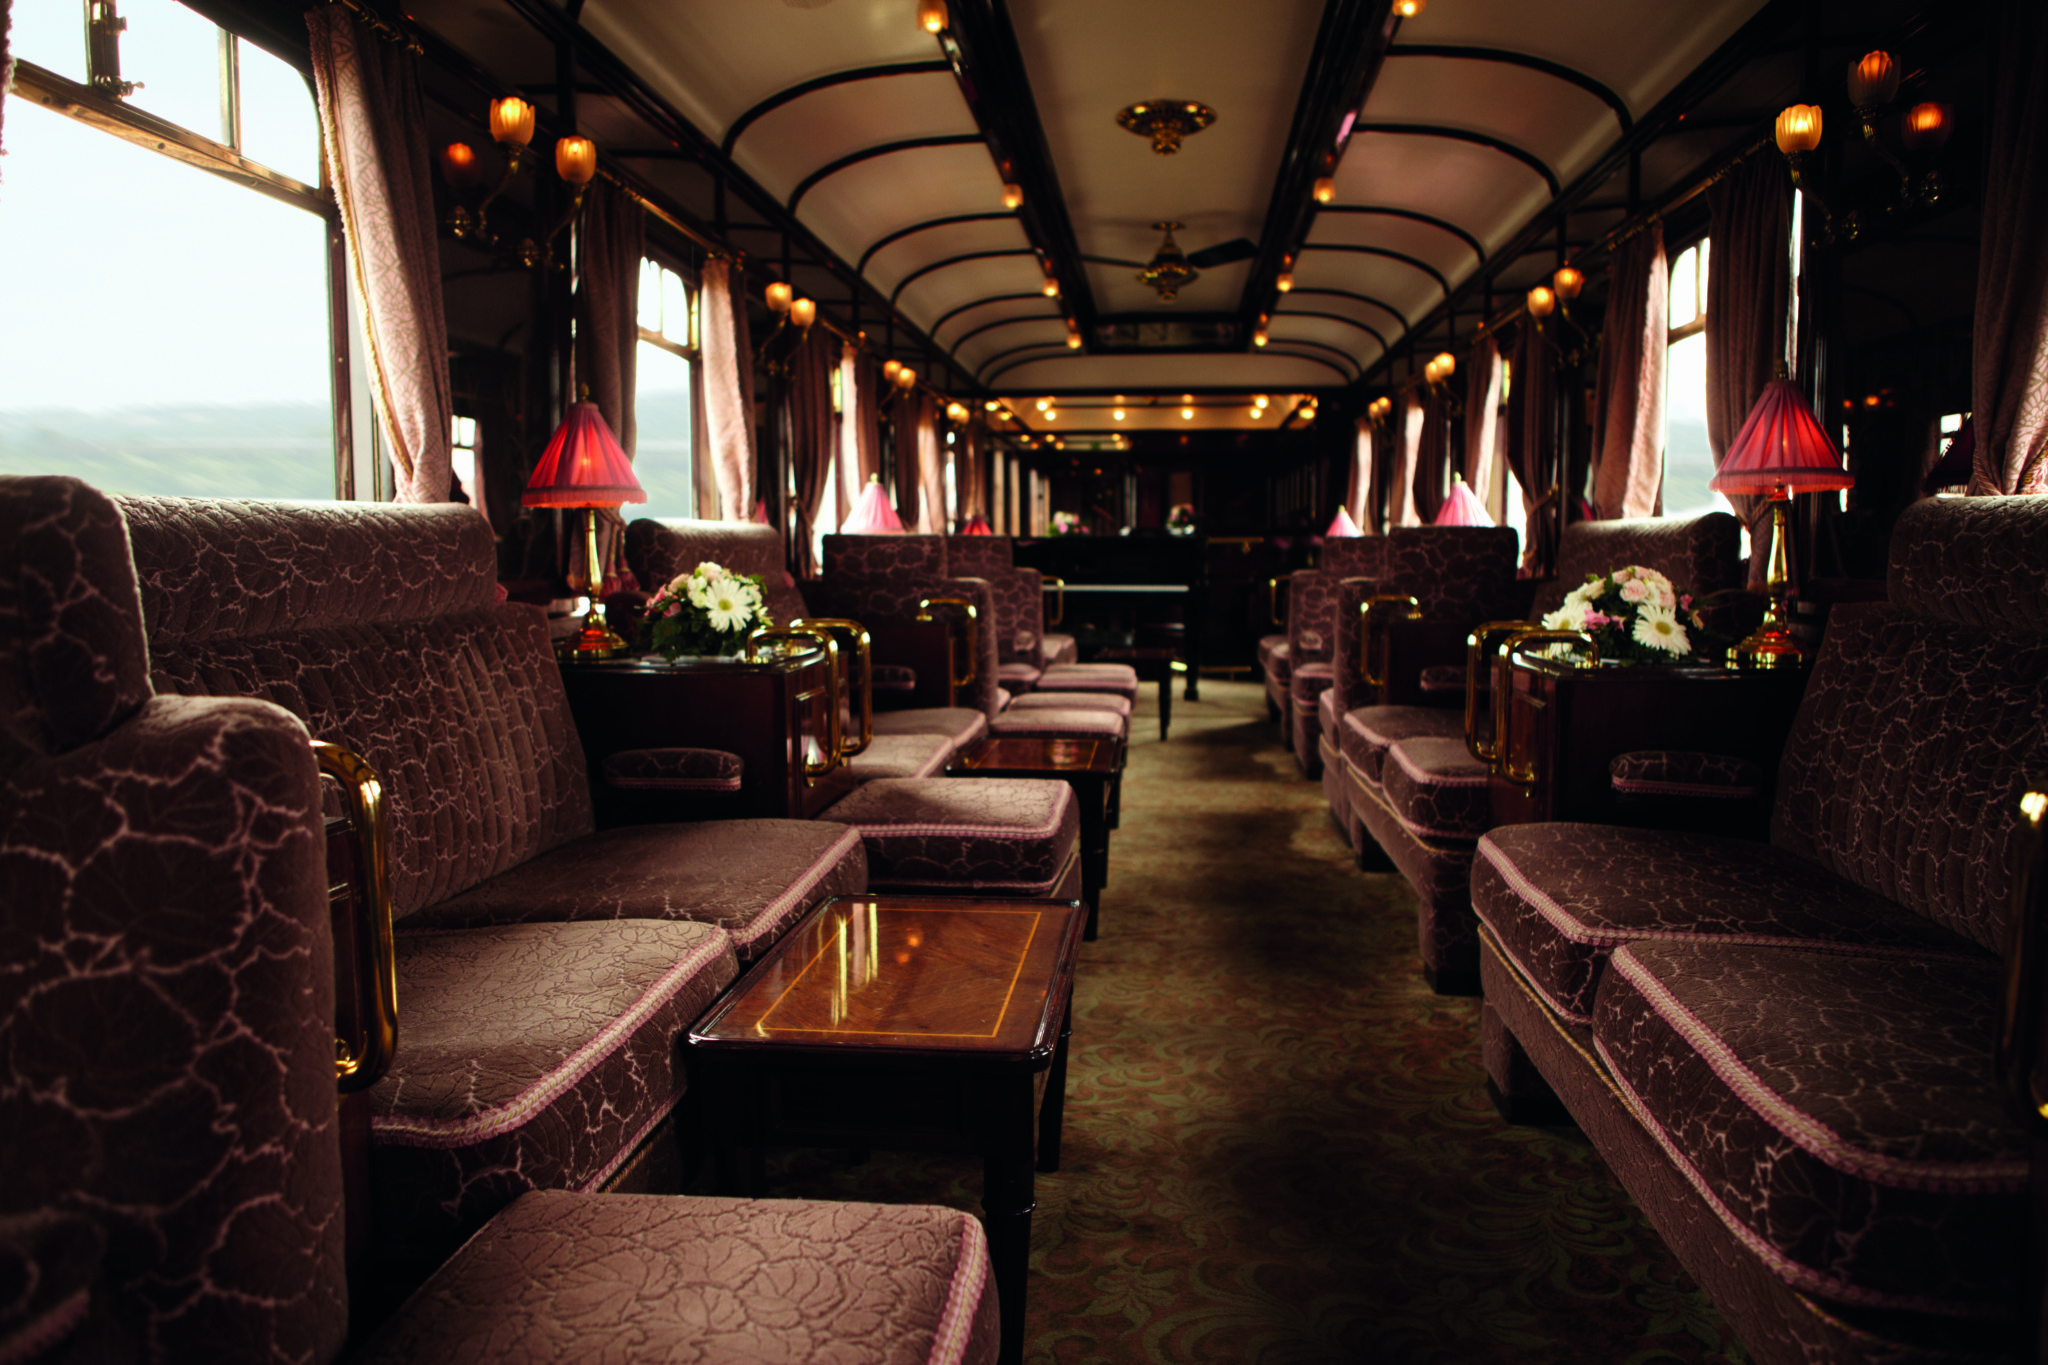 venice simplon orient express to berlin from london with planet rail